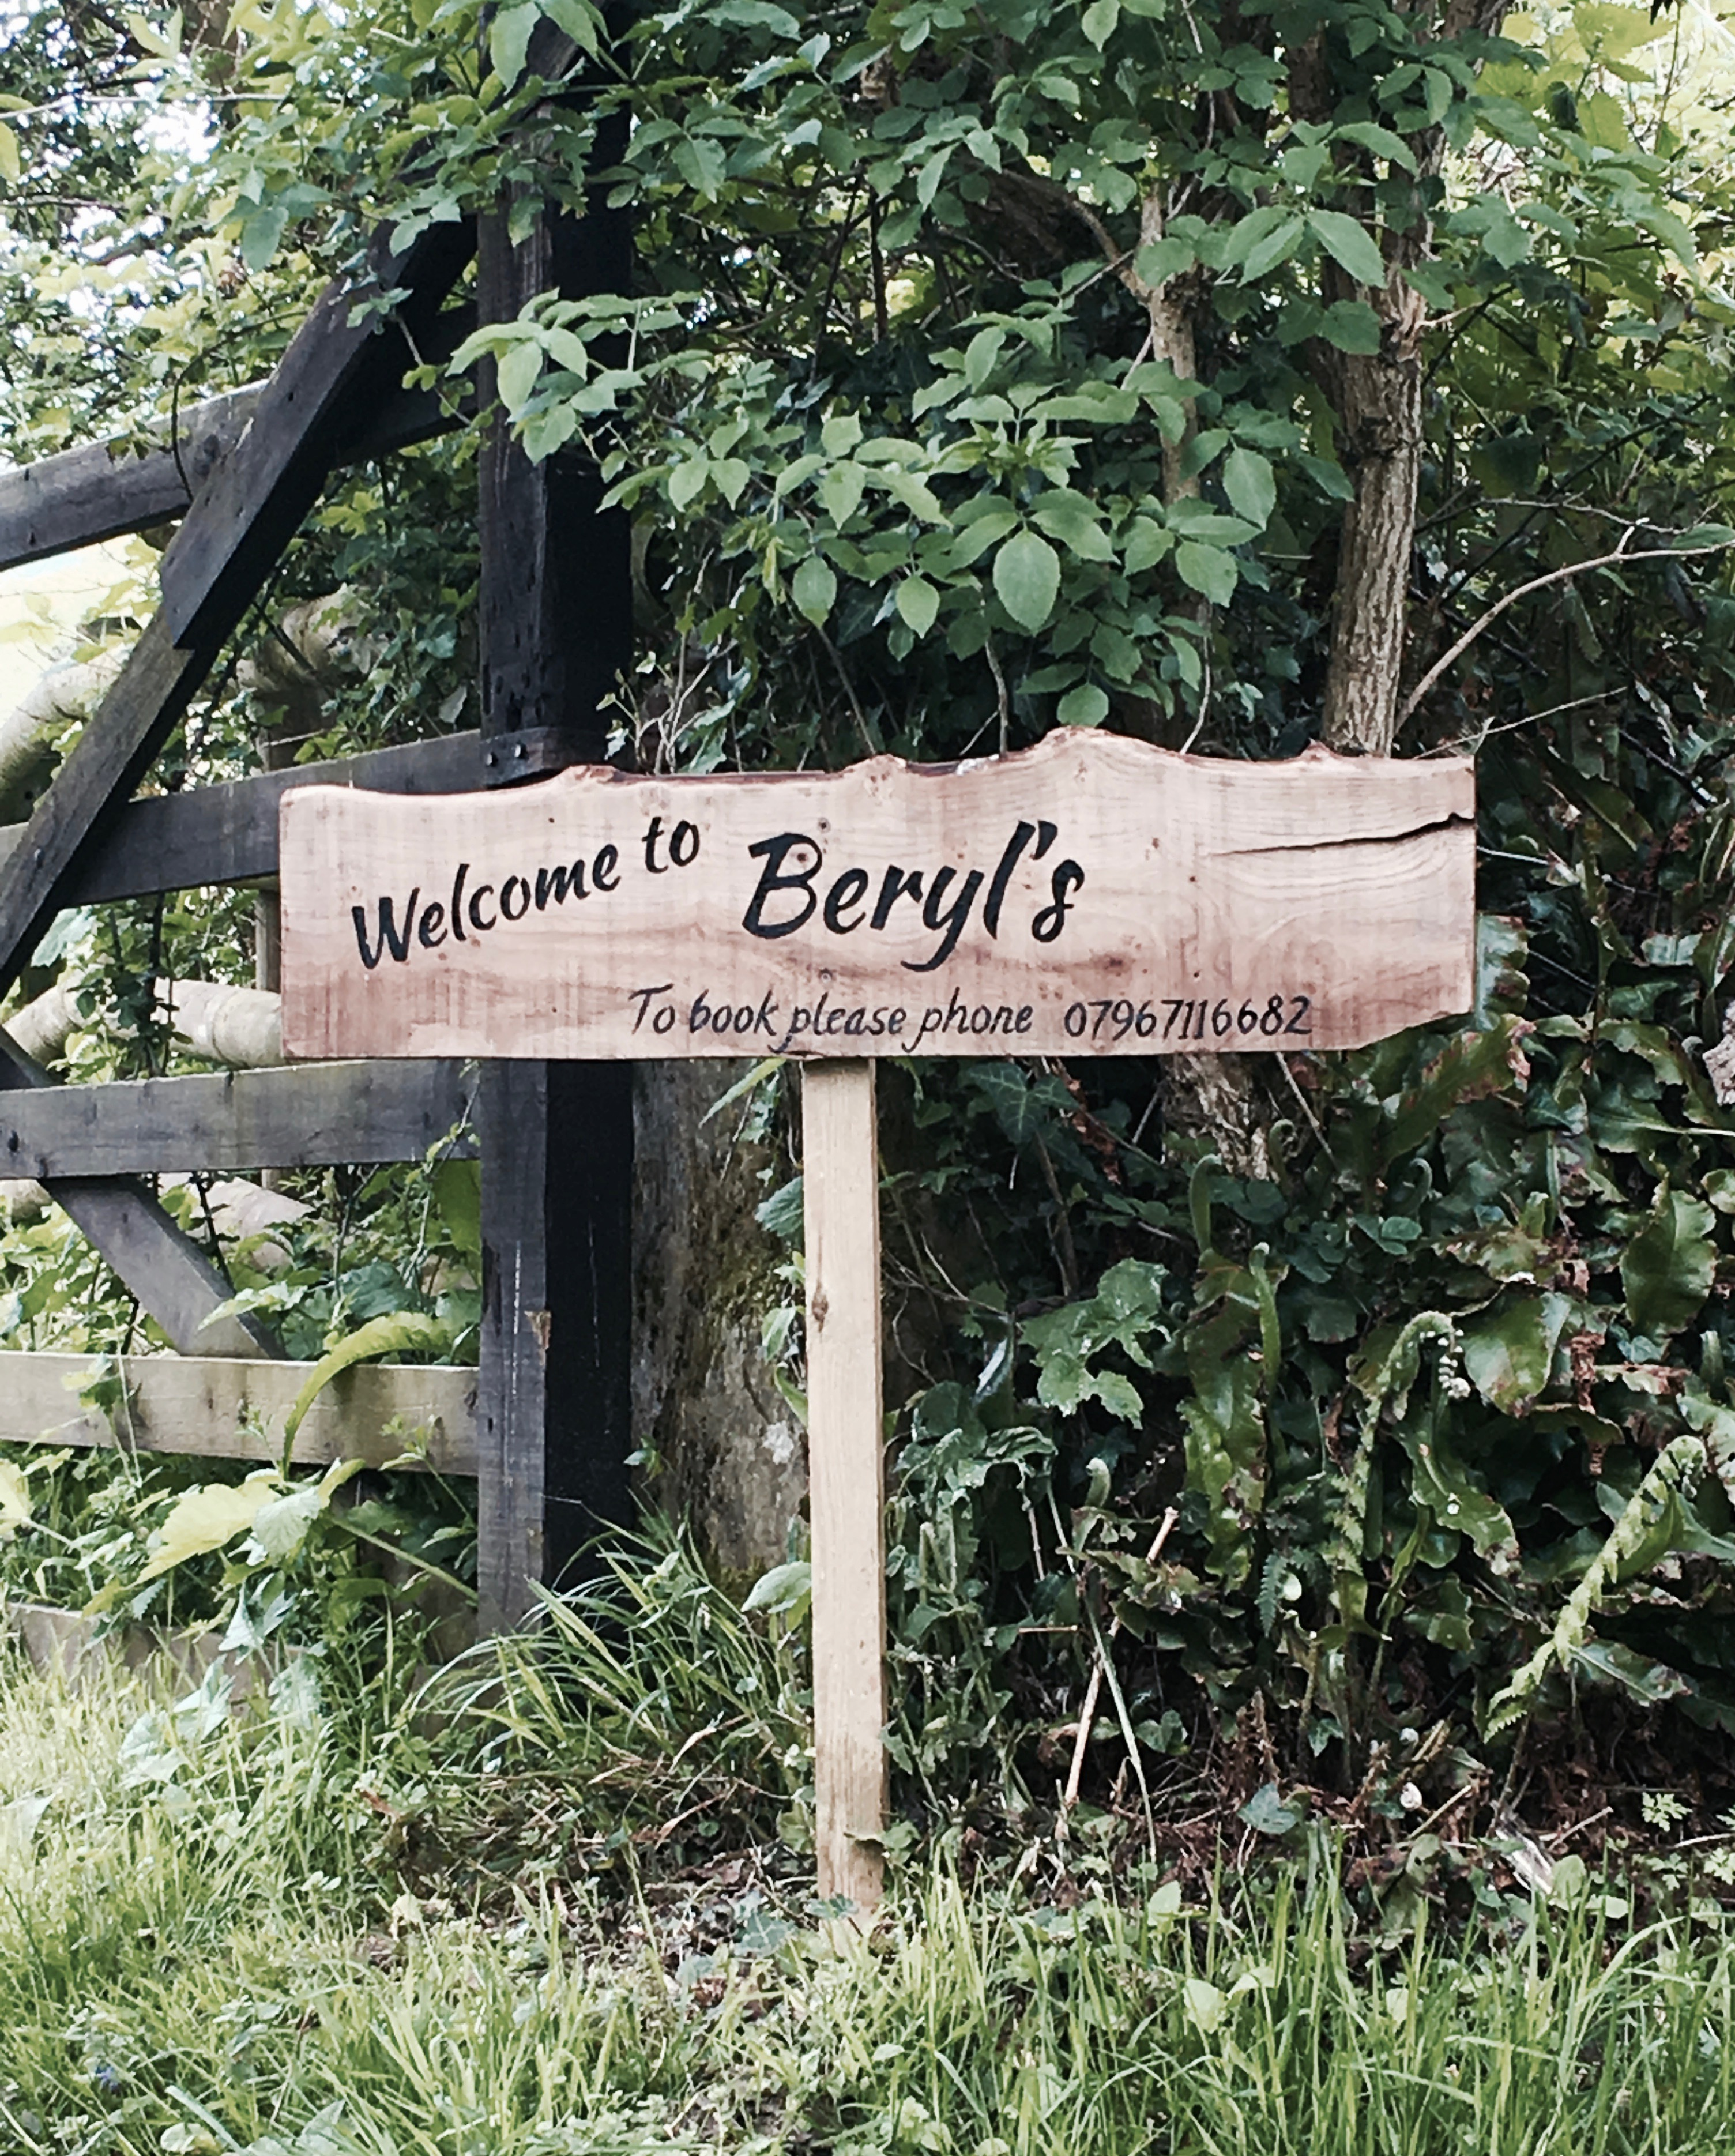 Entrance to Beryls